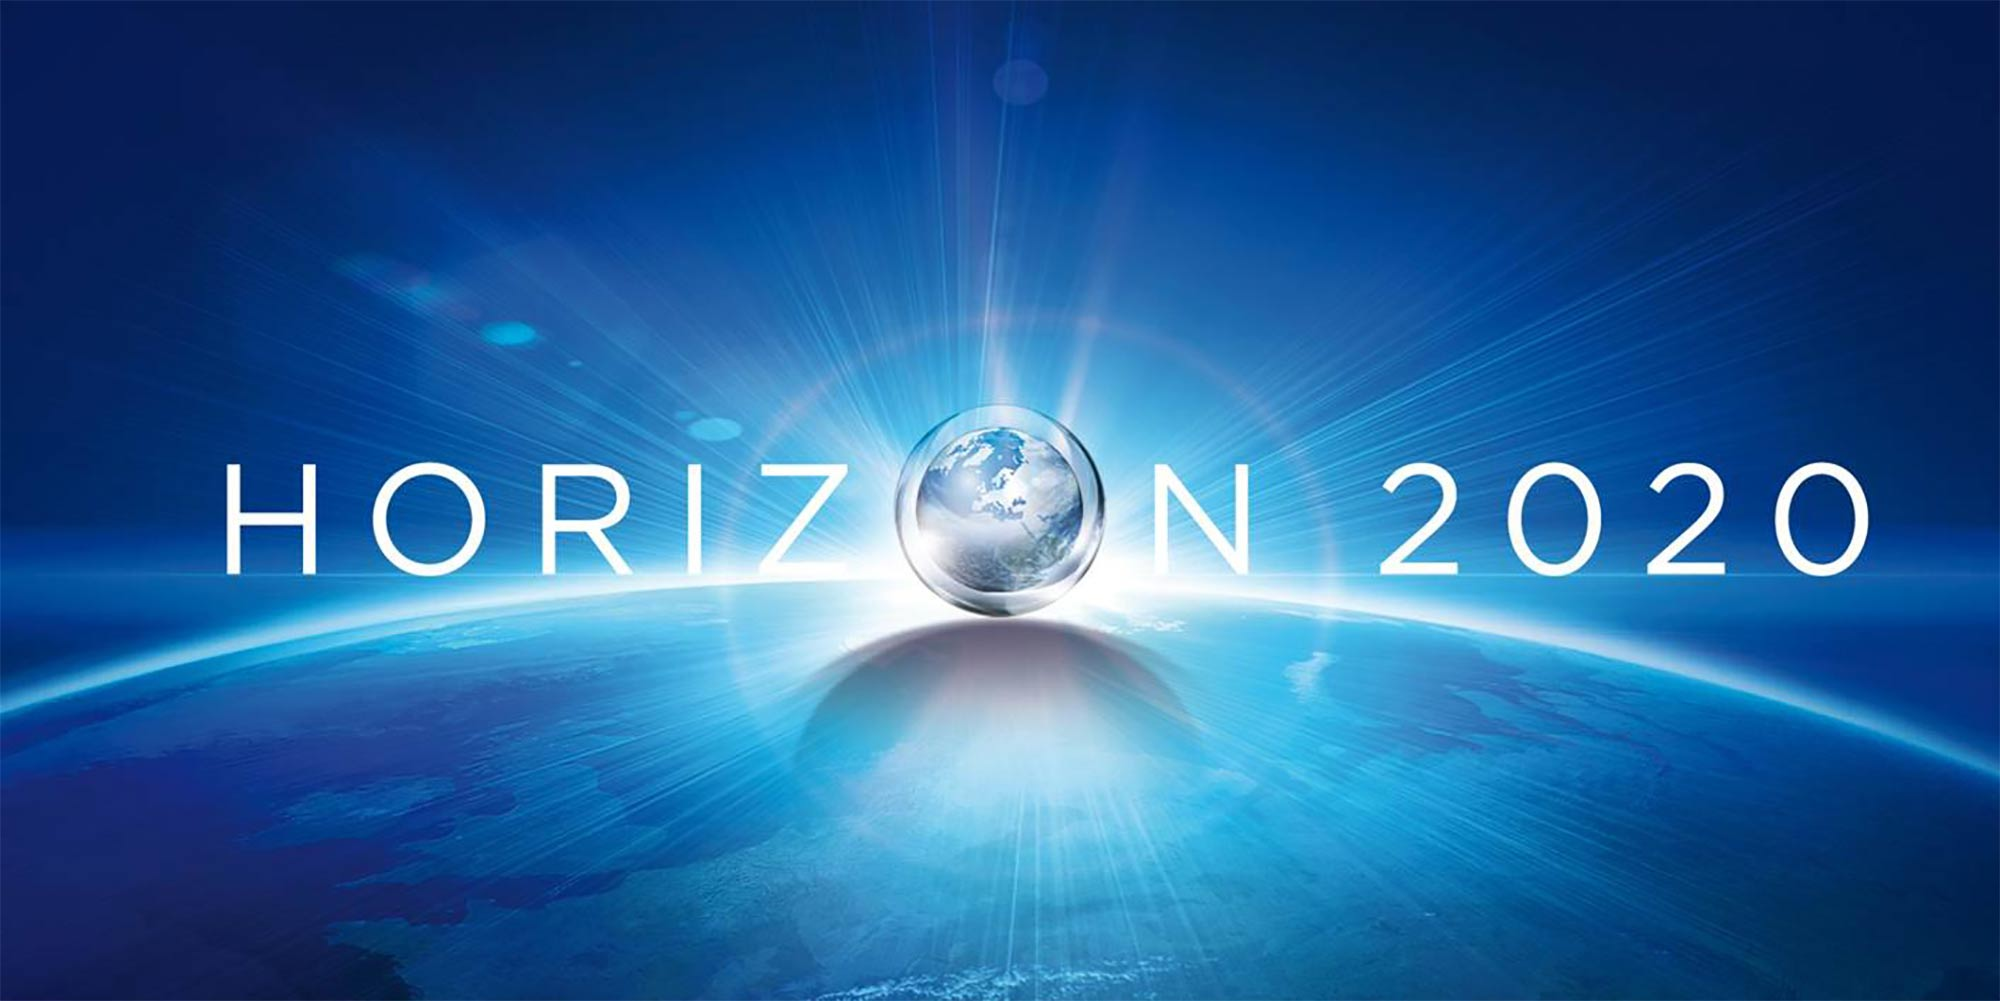 Commission launches new Horizon 2020 Dashboard